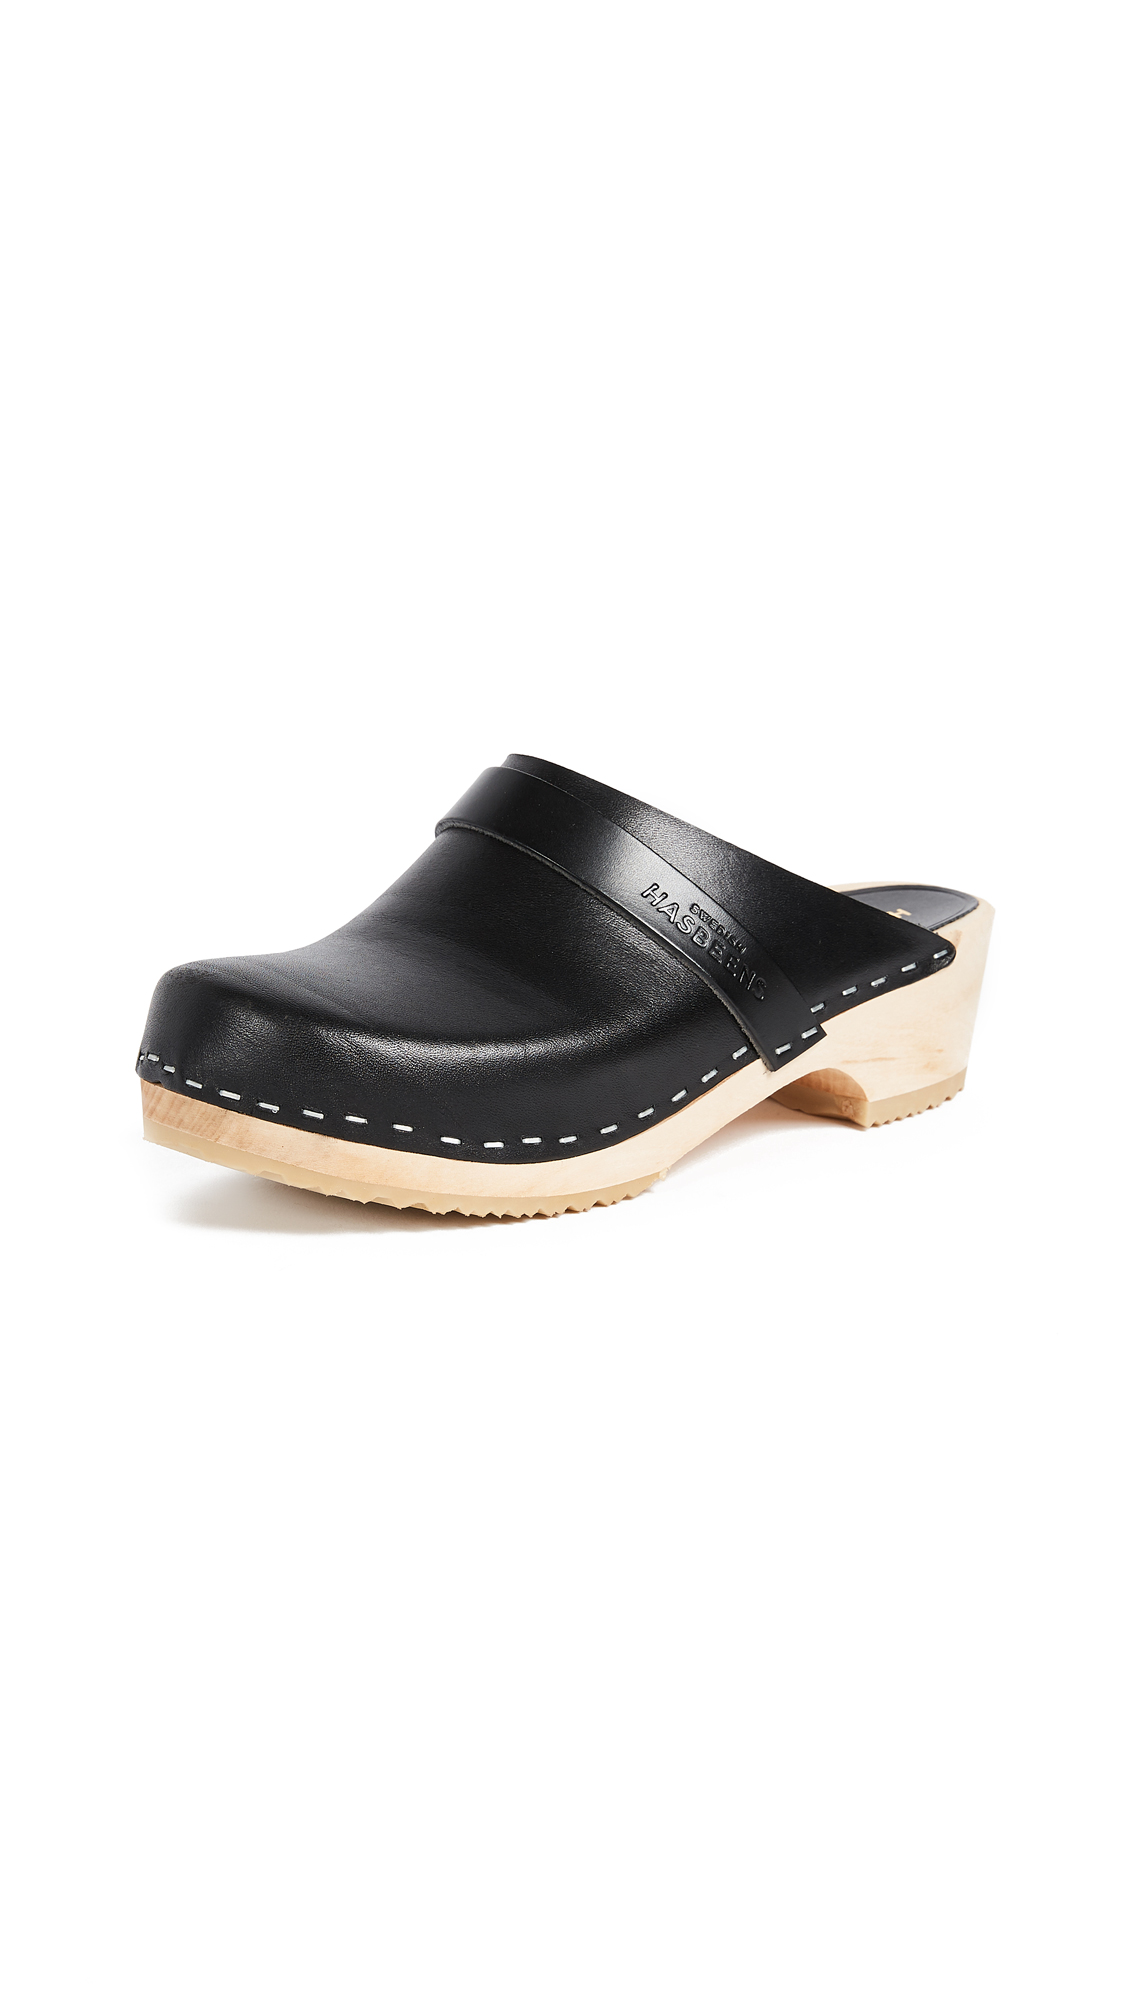 Swedish Hasbeens Swedish Husband Clogs - Black